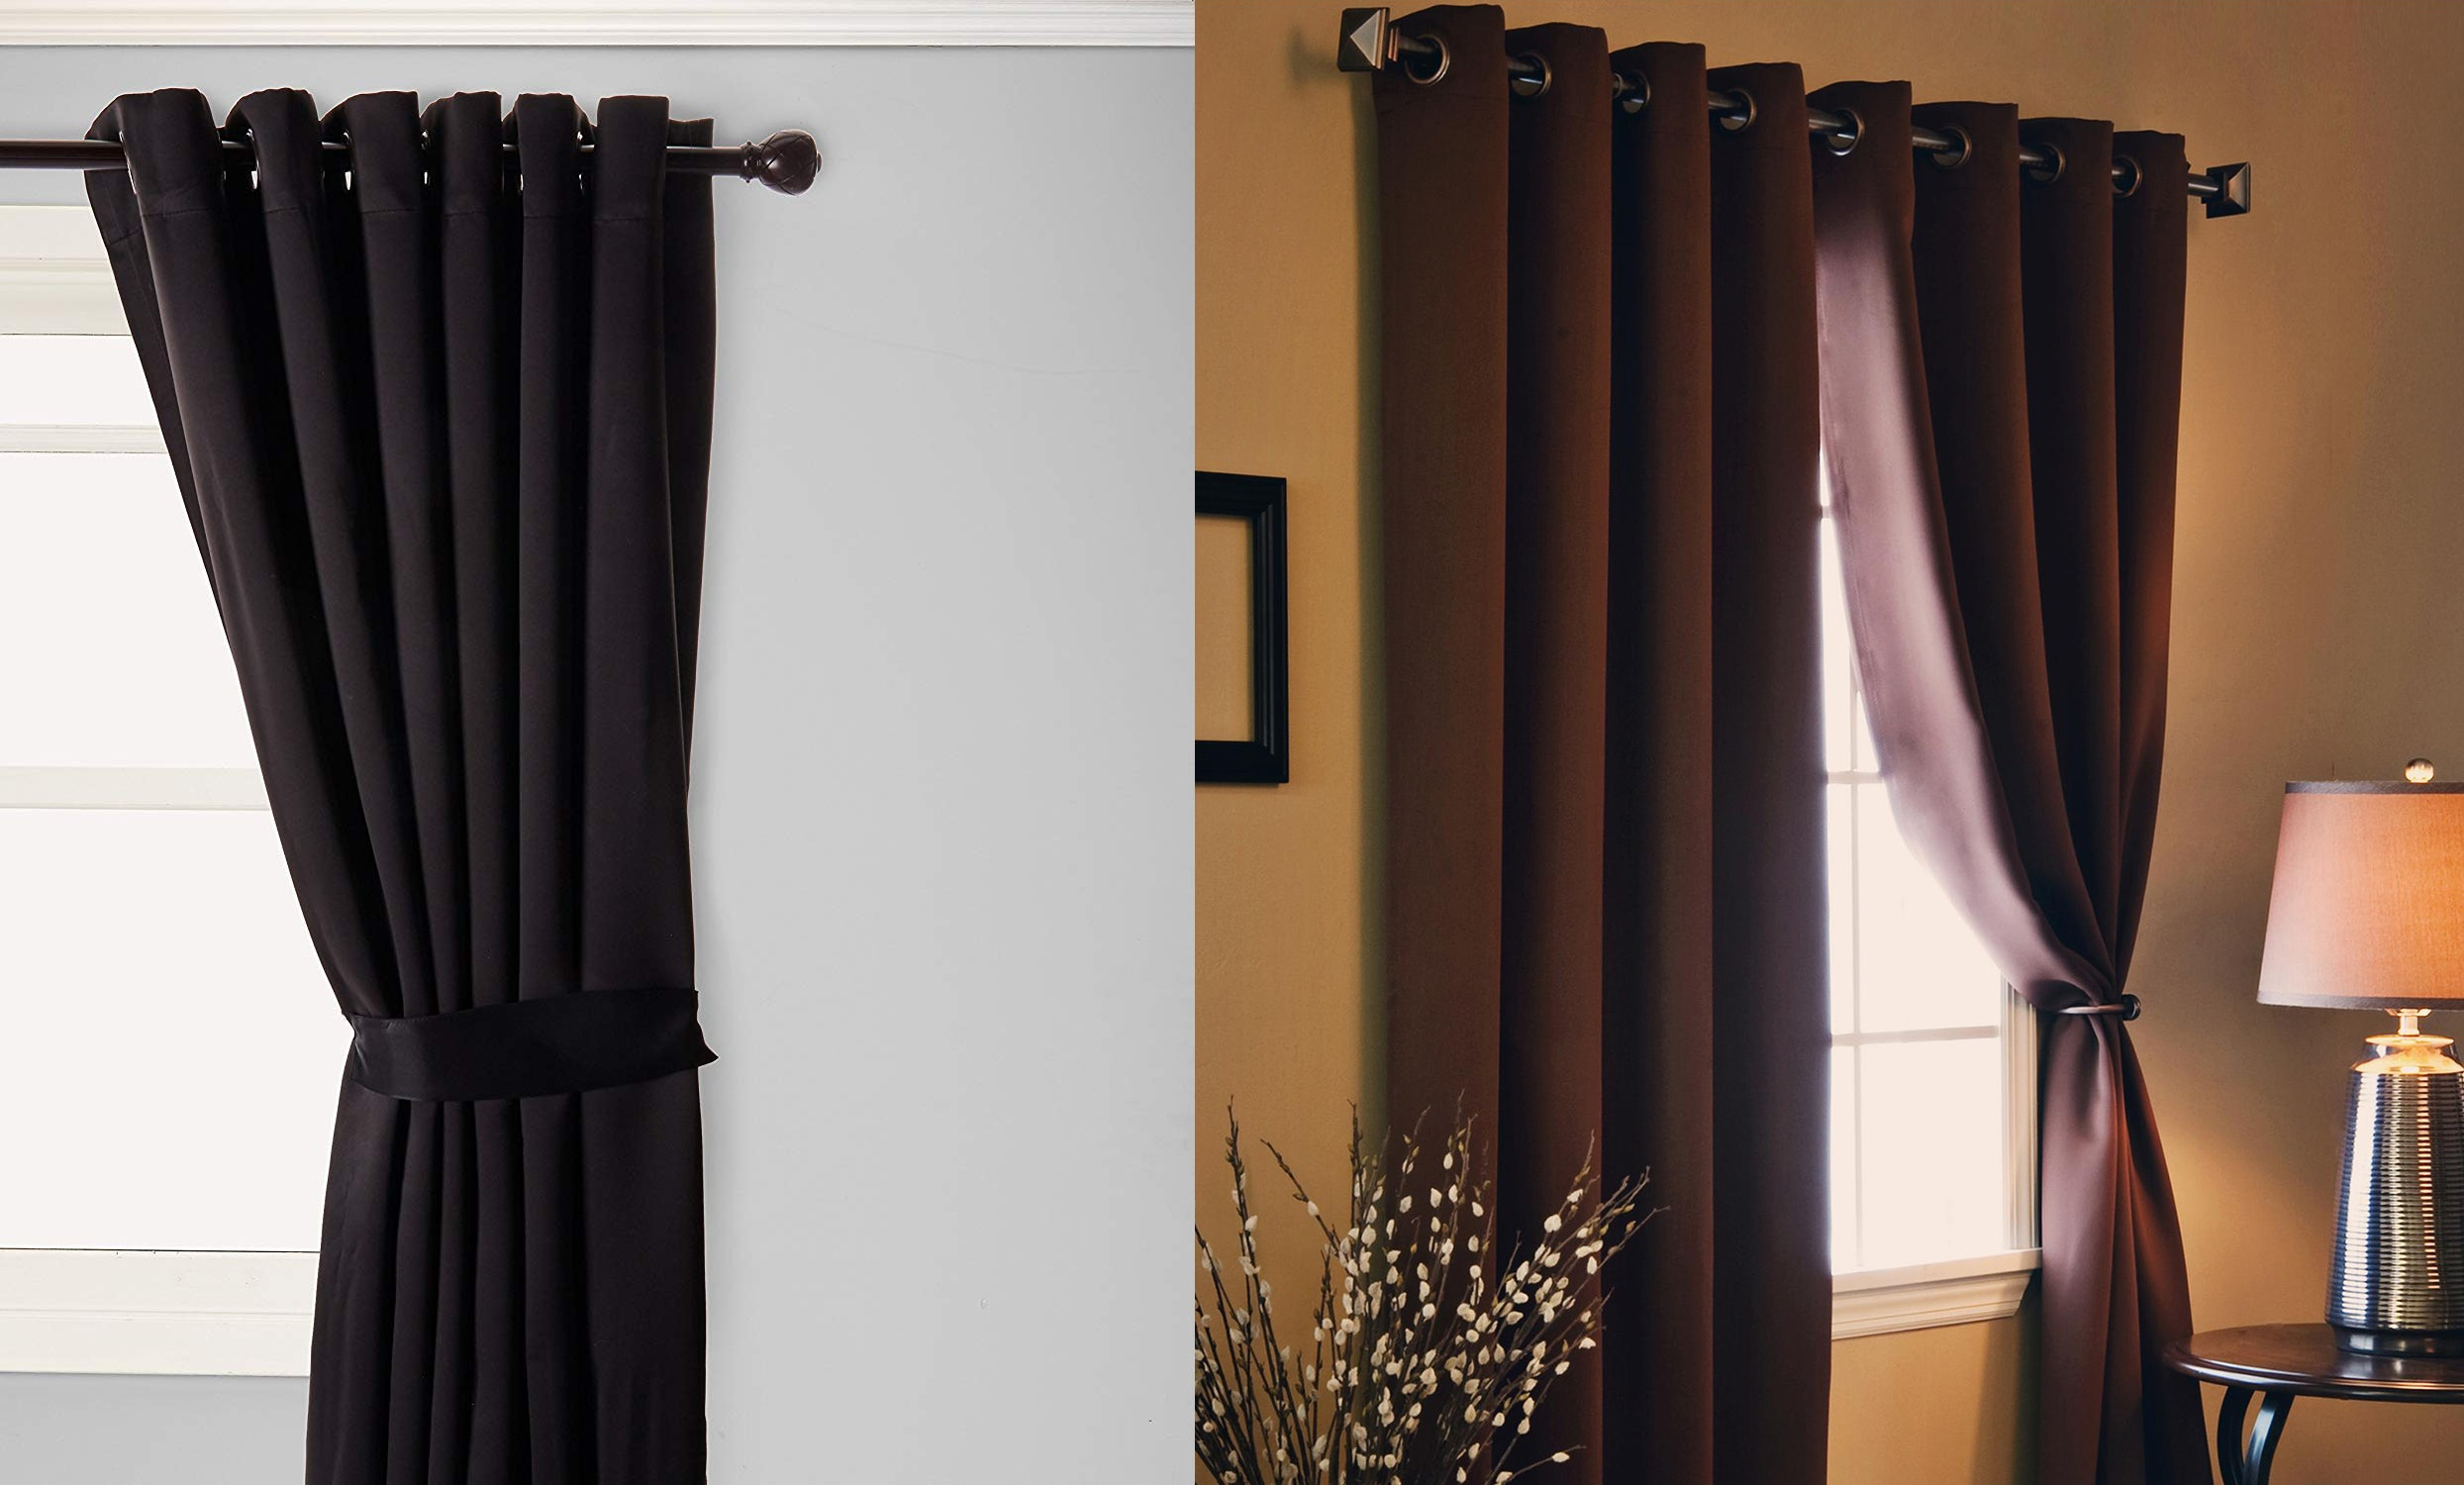 Curtain Insulation Fabric The 3 Best Thermal Curtains To Keep Heat Out